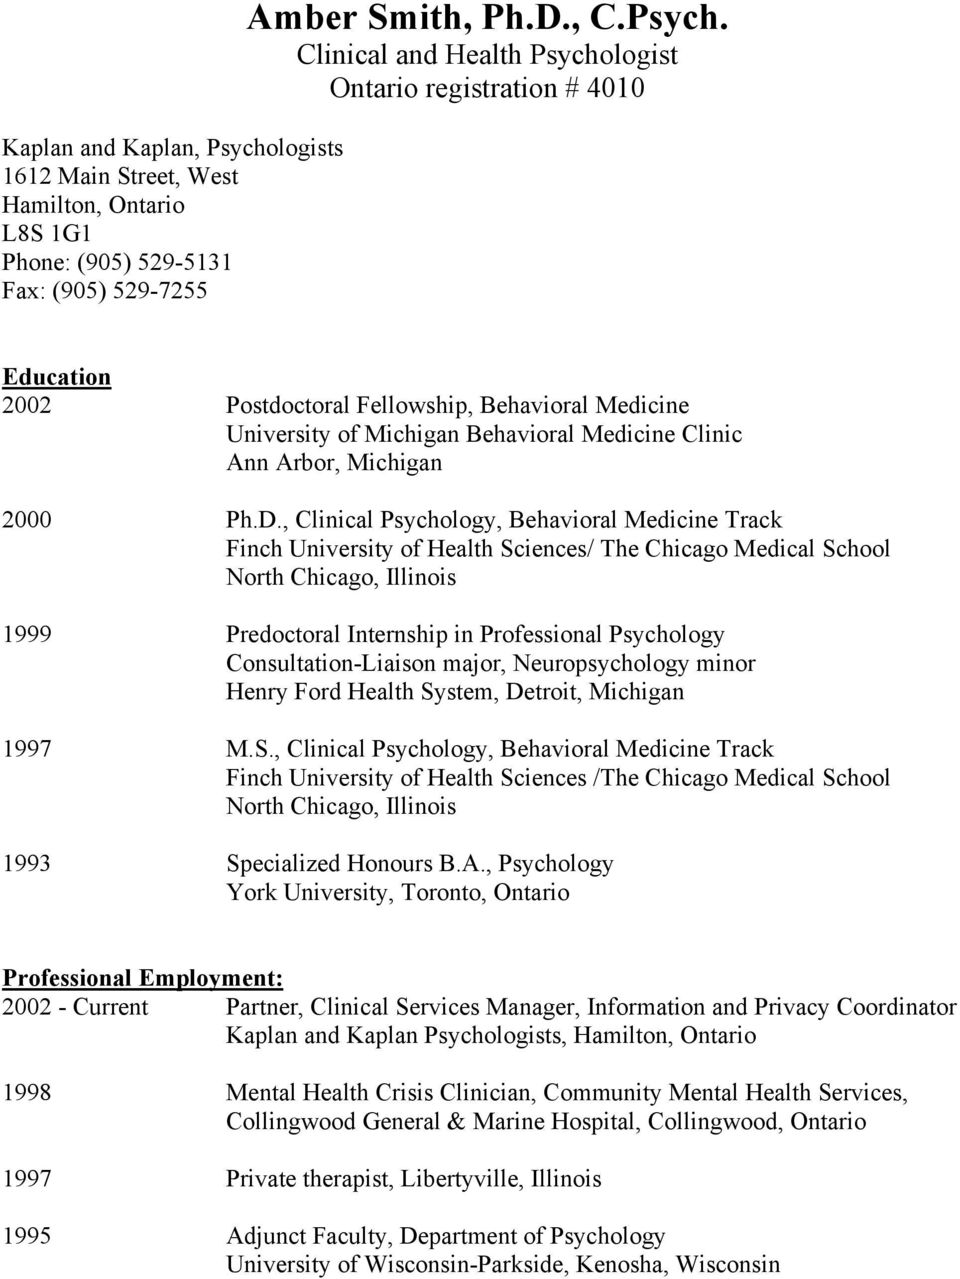 Clinical and Health Psychologist Ontario registration # 4010 Education 2002 Postdoctoral Fellowship, Behavioral Medicine University of Michigan Behavioral Medicine Clinic Ann Arbor, Michigan 2000 Ph.